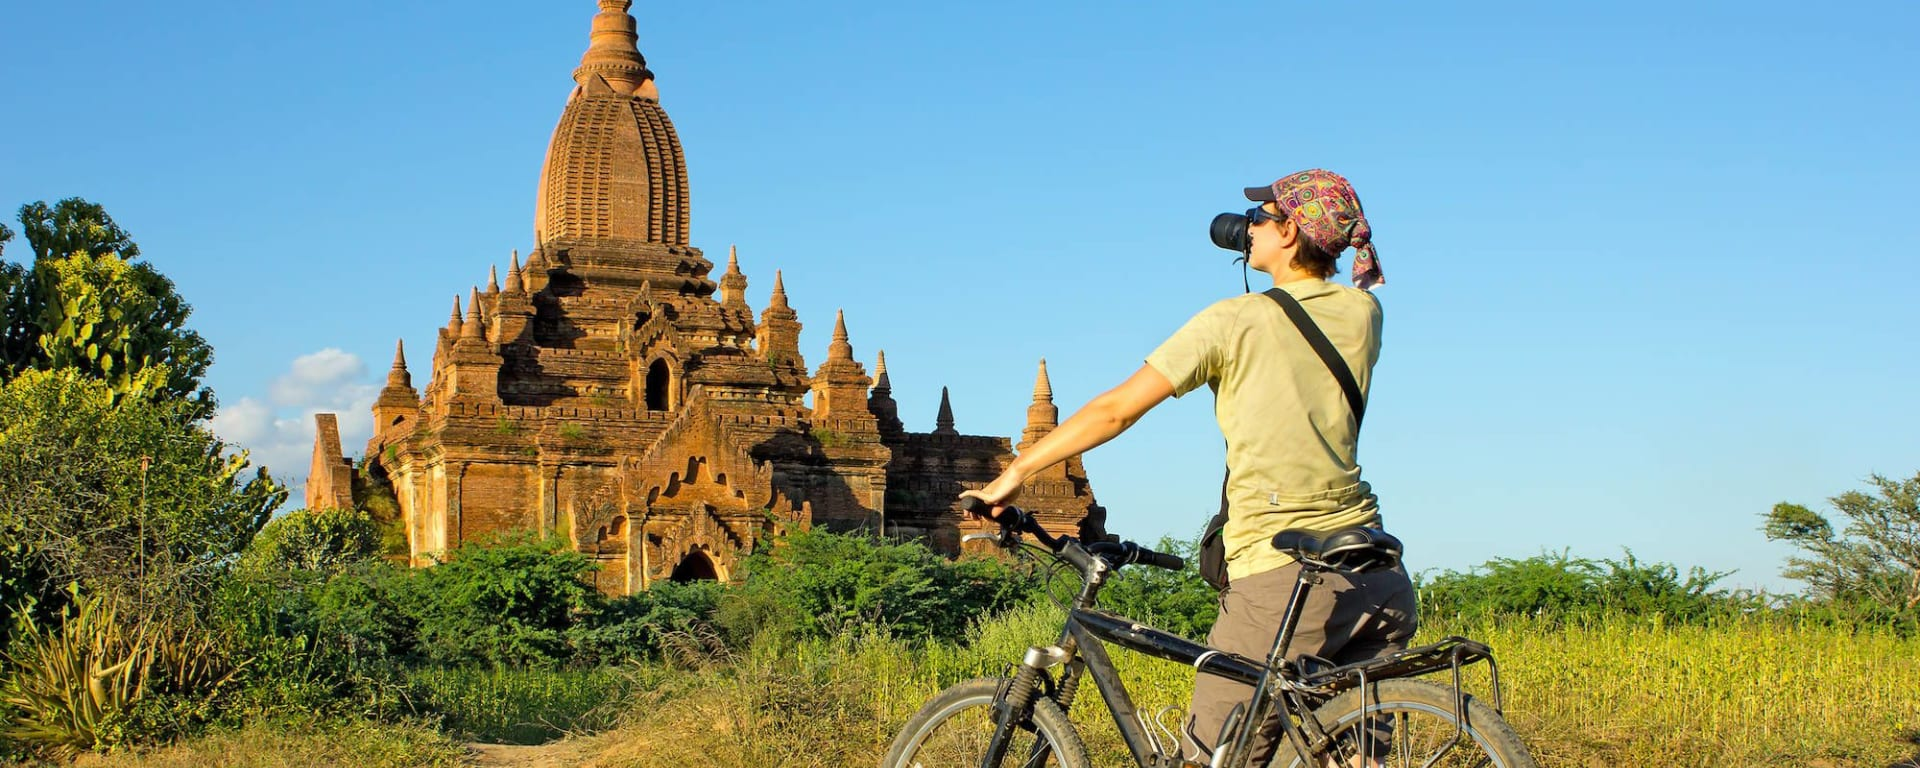 Découverte active du Myanmar de Yangon: Bagan: touring with bycycle